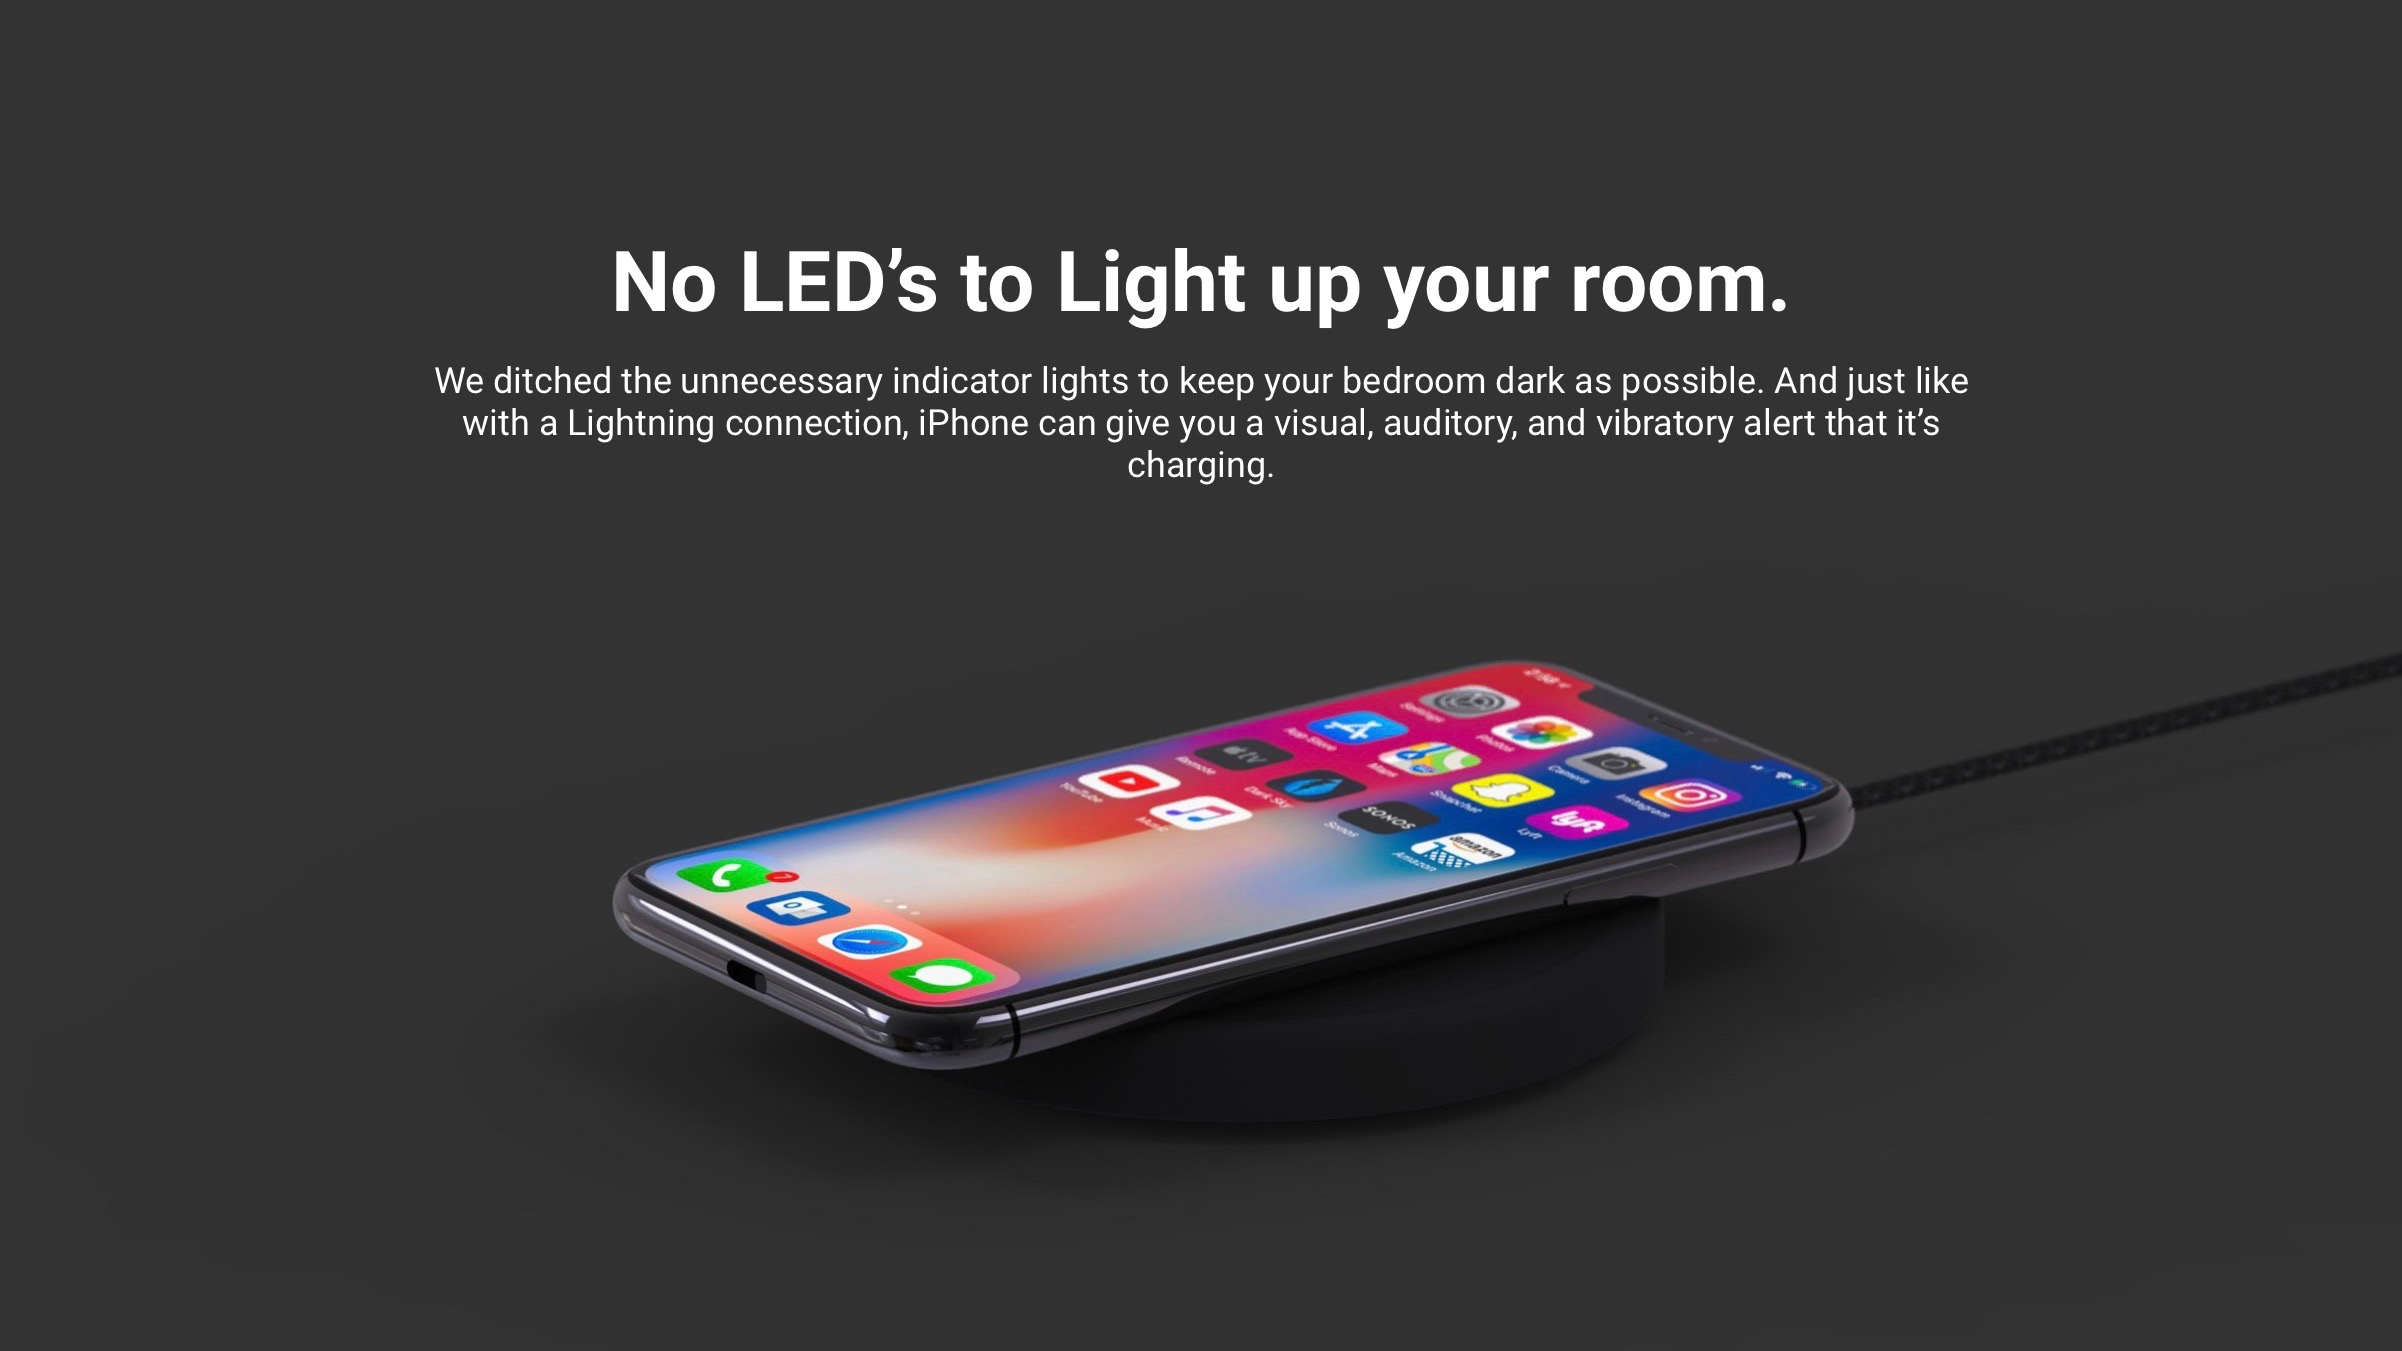 elevationlab launches nightpad wireless iphone charger with zero leds 25 off exclusive deal